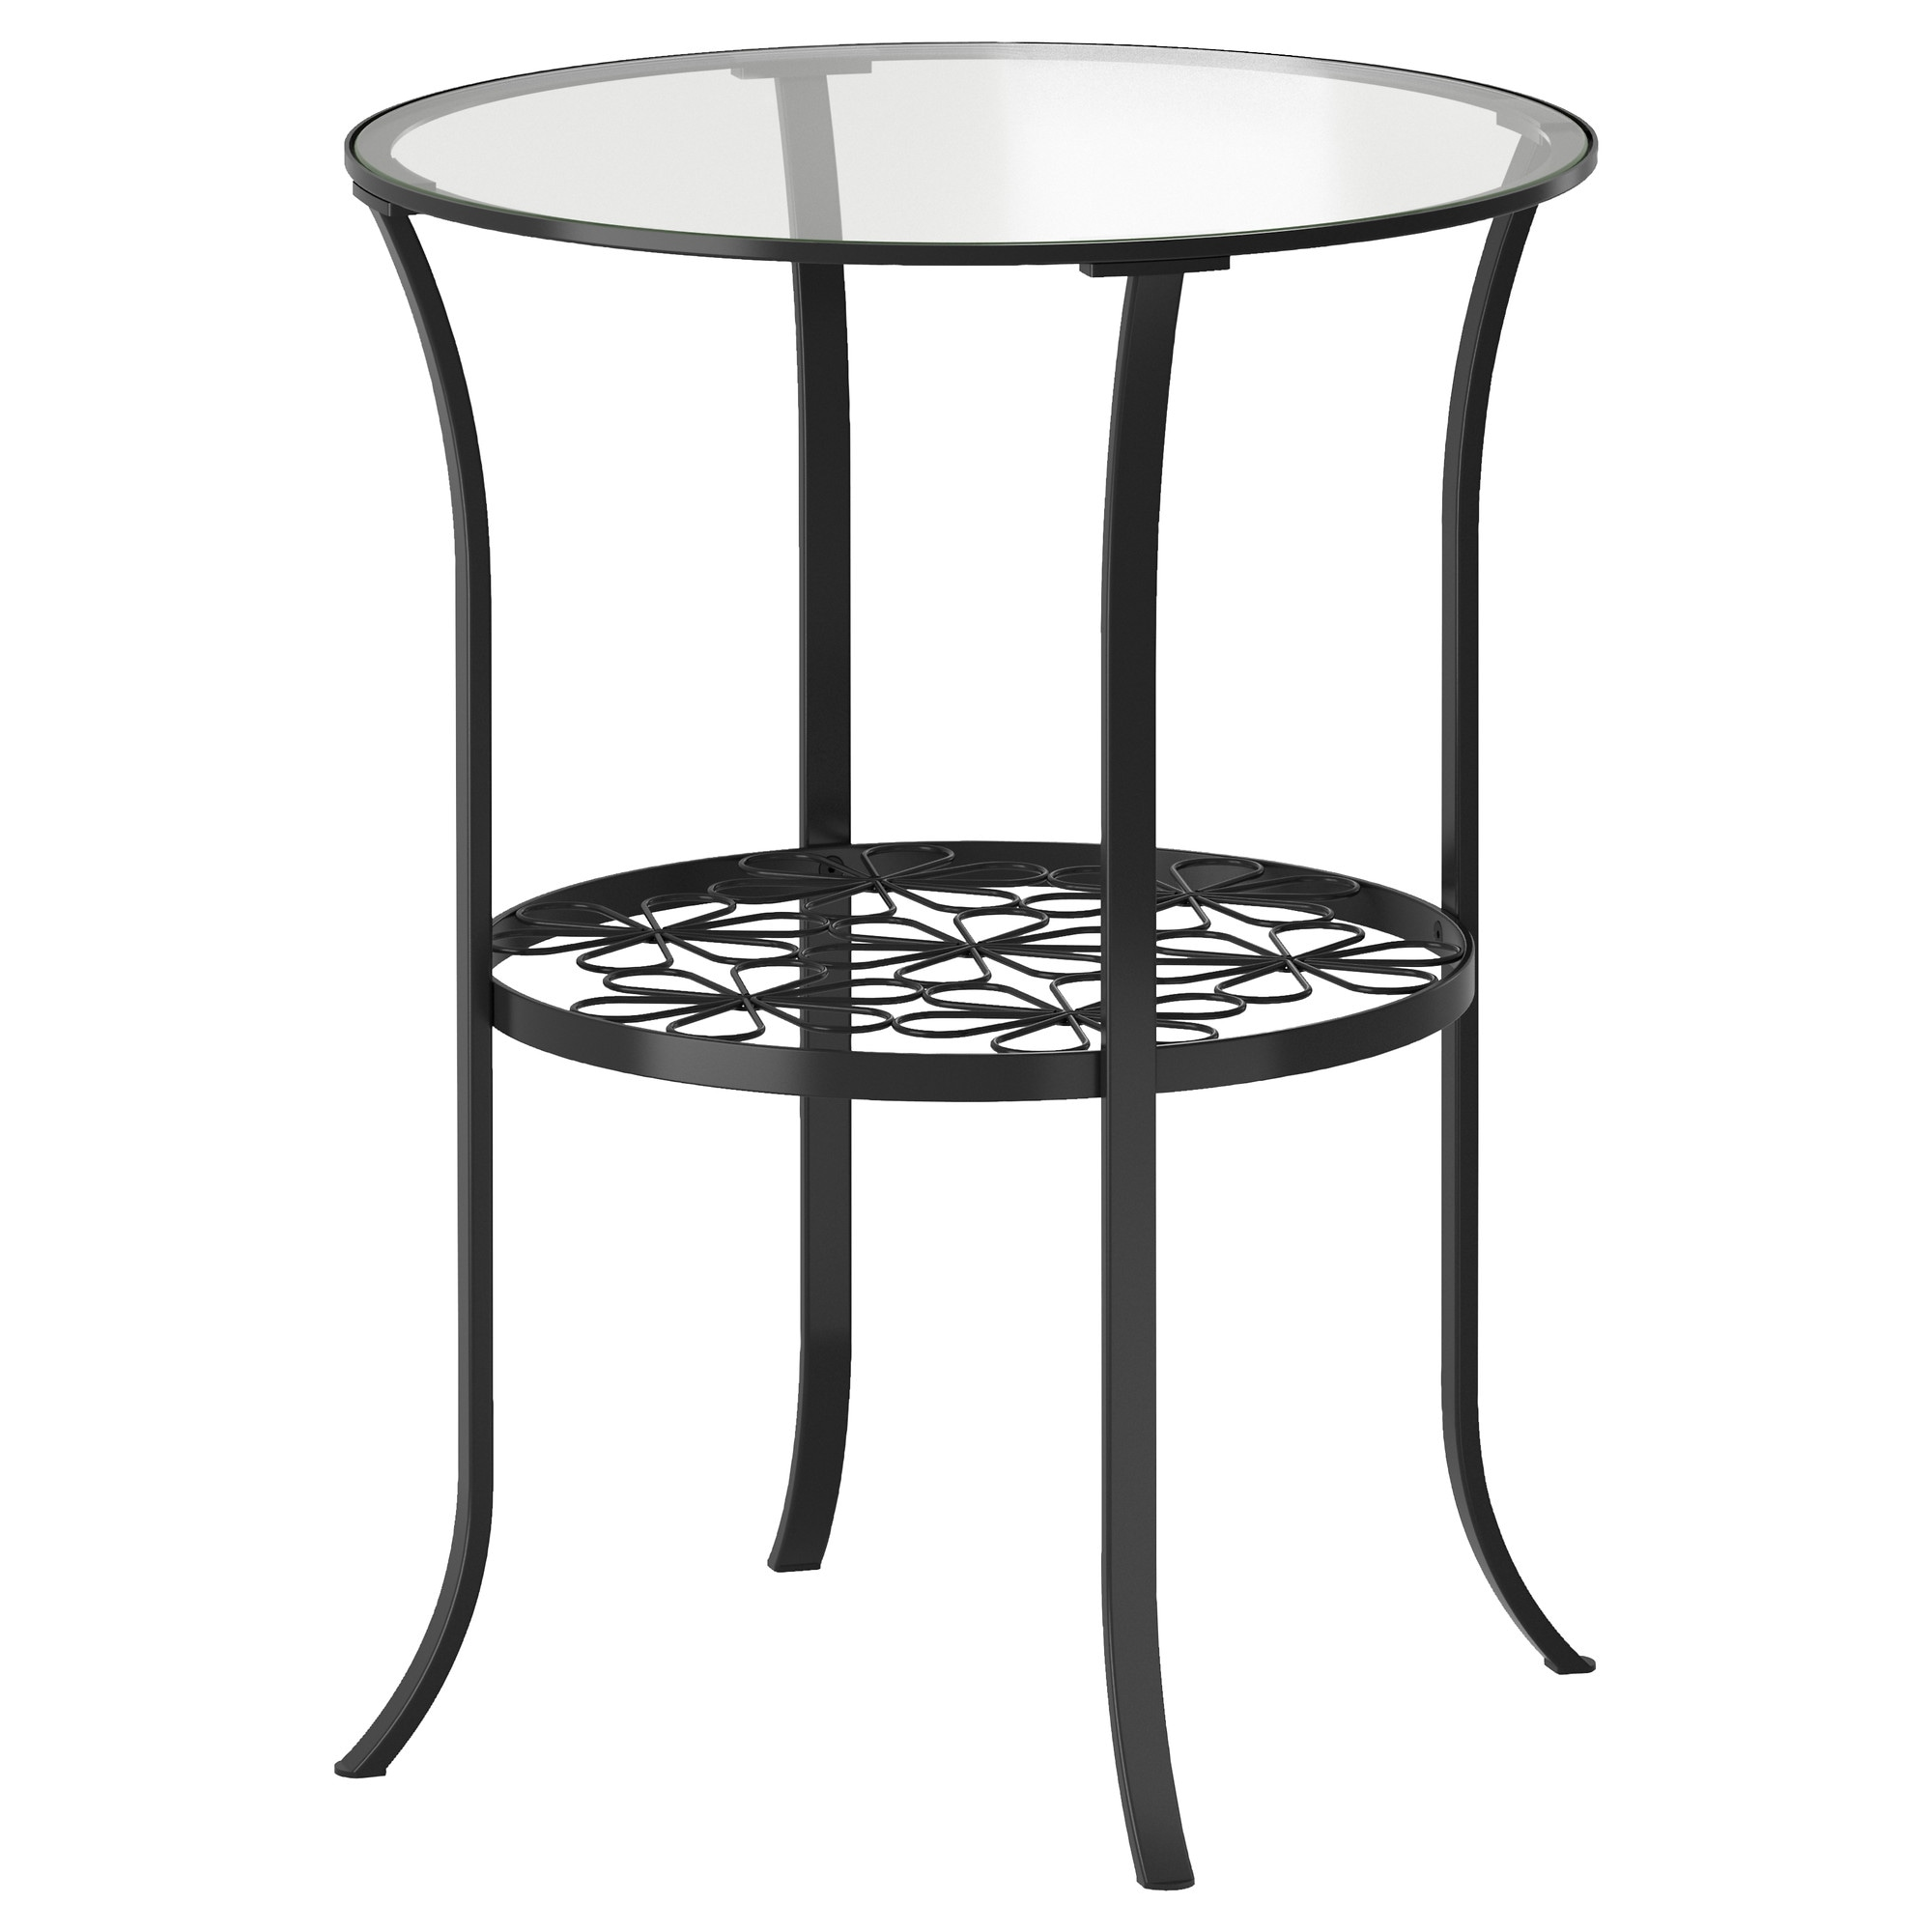 Black Glass Tables side tables - glass & wooden side tables - ikea